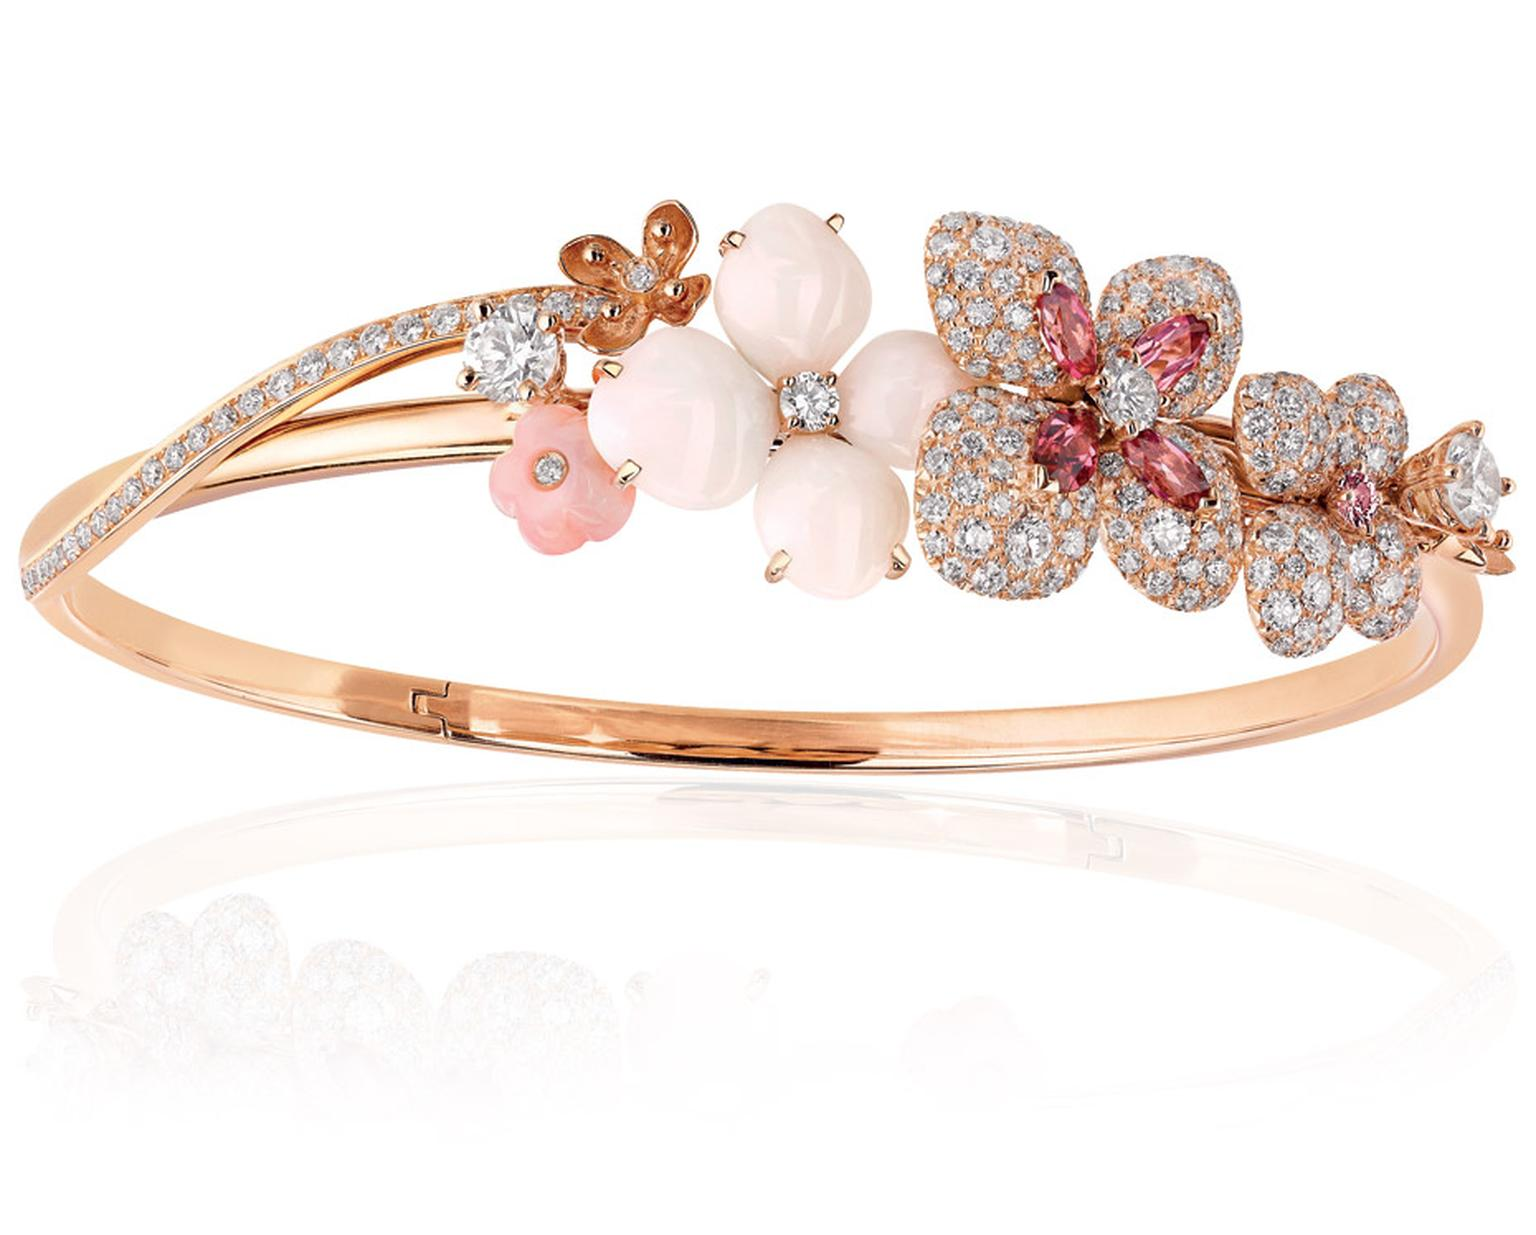 Chaumet Hortensia bracelet in pink gold with rubies, pink sapphires, rhodolite garnets, red and pink tourmalines.